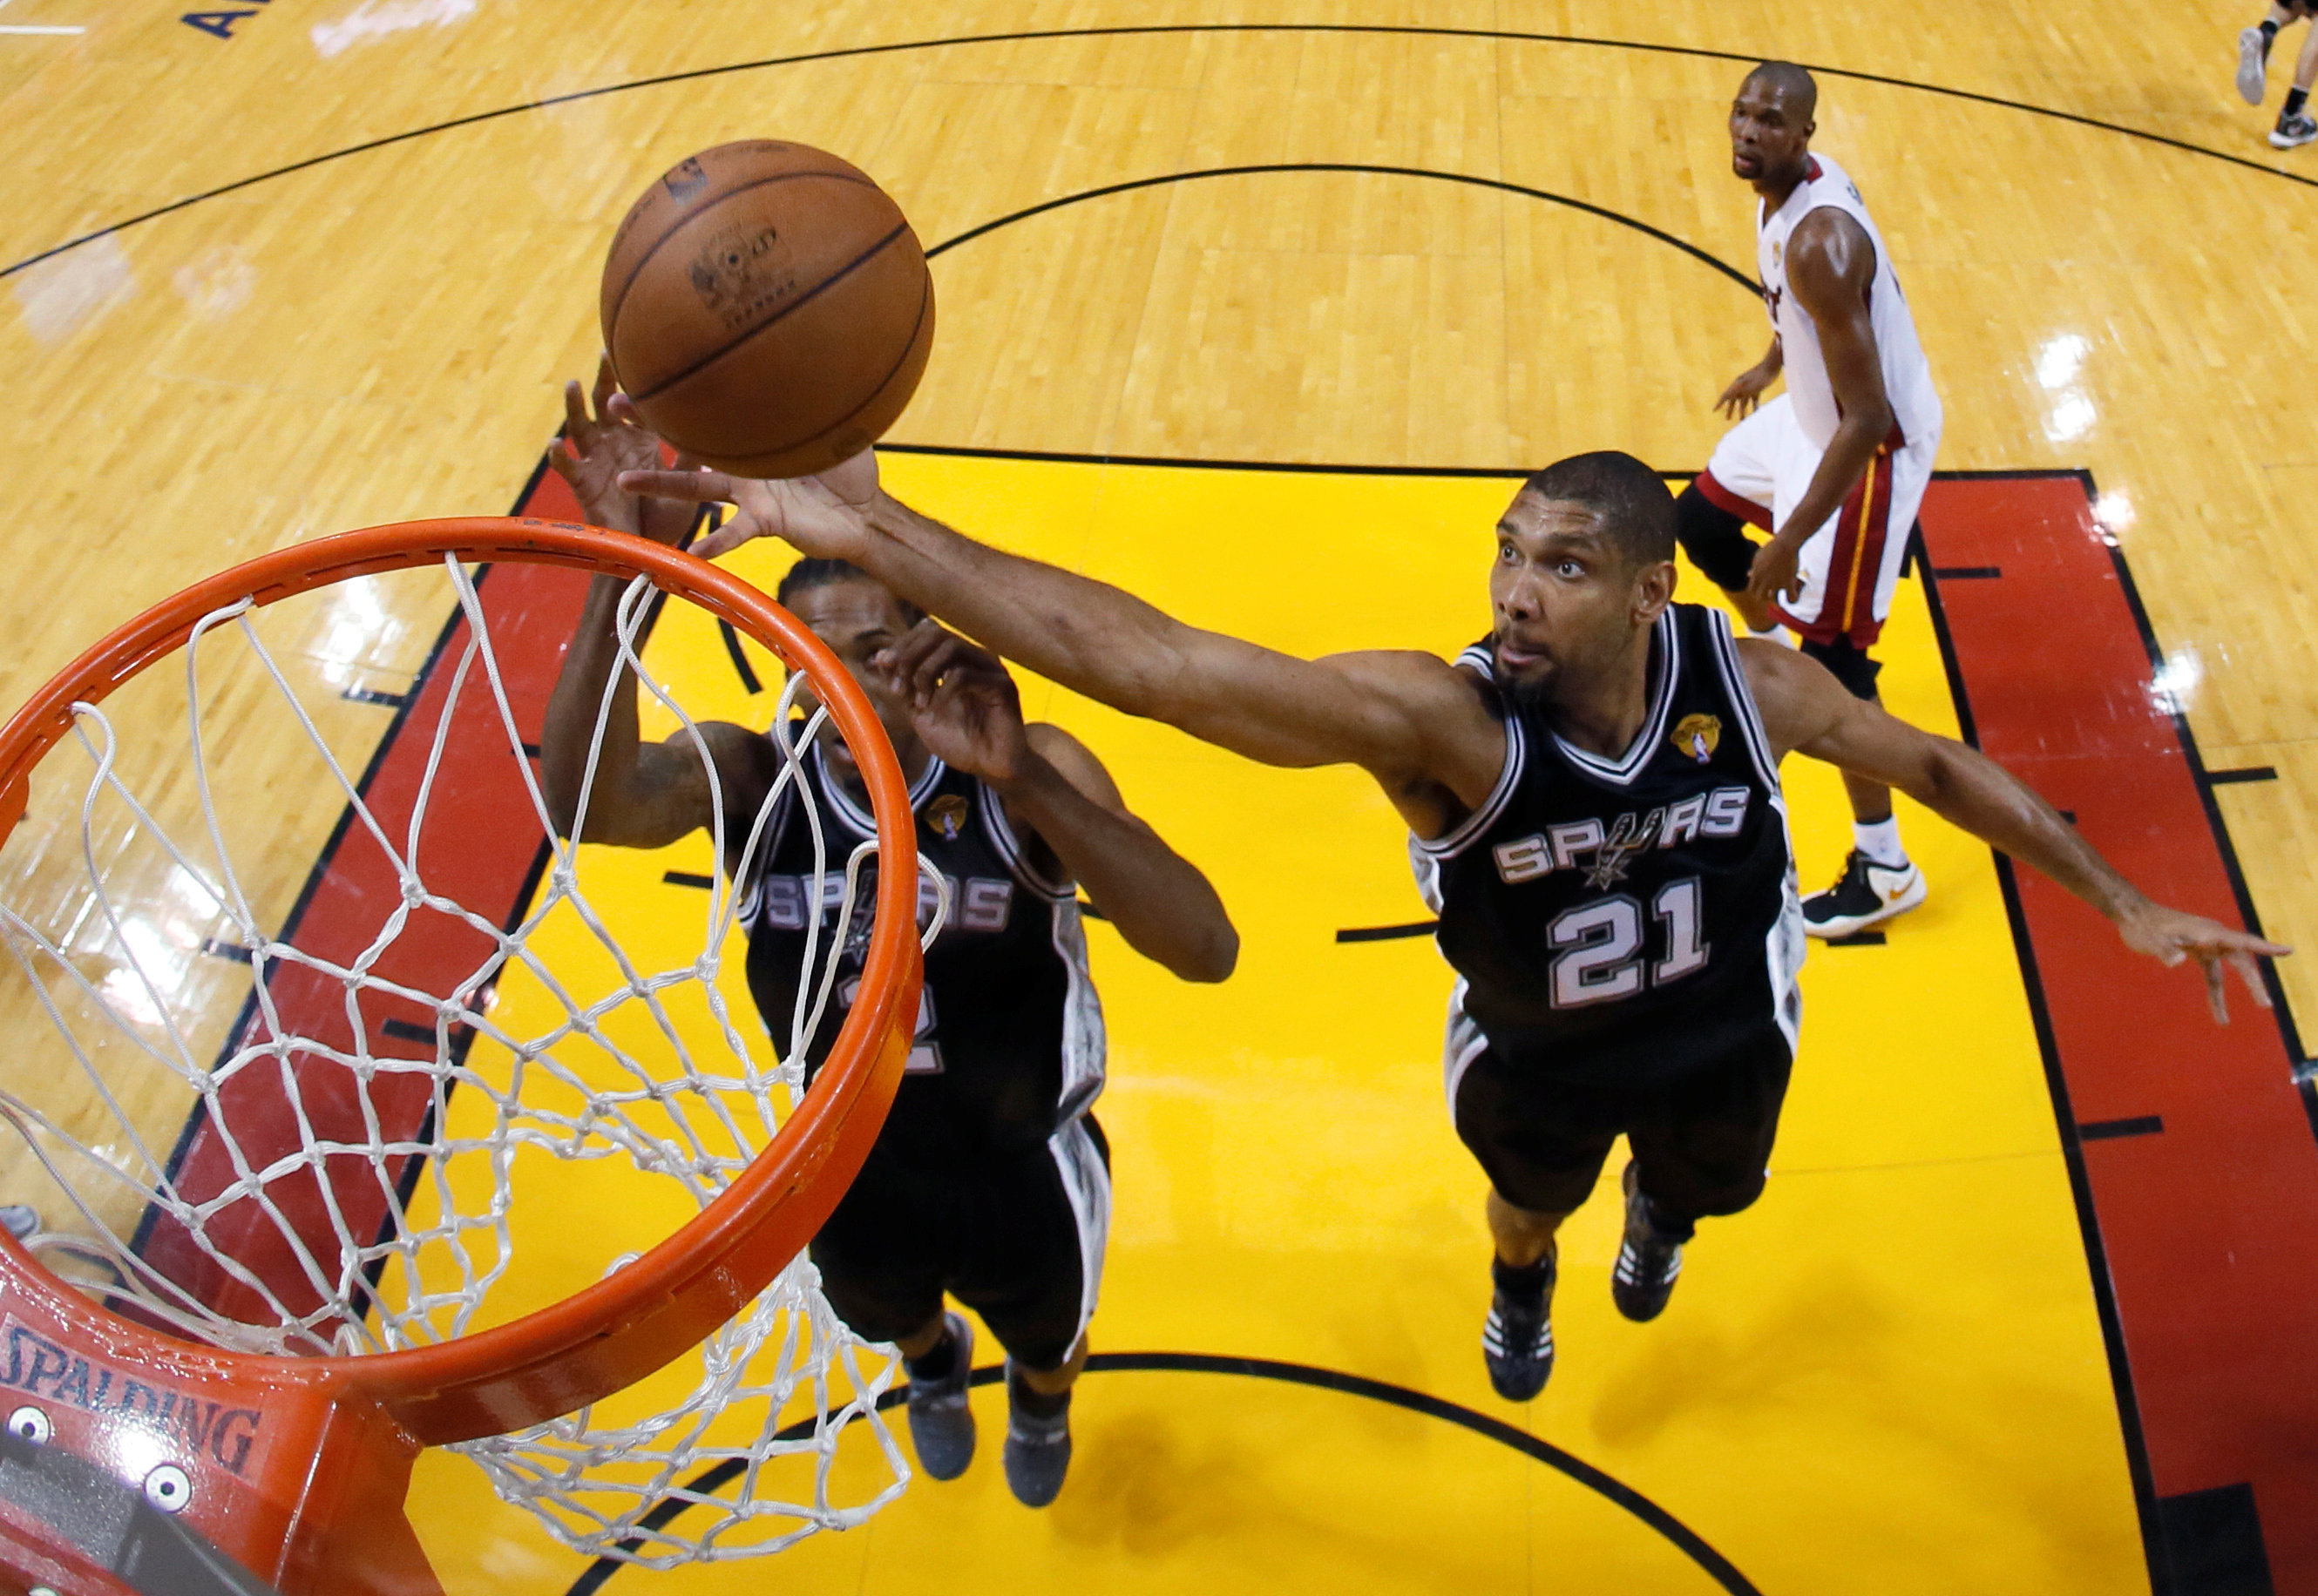 San Antonio Spurs power forward Tim Duncan (21) pulls down a rebound against the Miami Heat during Game 6 of their NBA Finals basketball playoff in Miami, Florida June 18, 2013. REUTERS/Kevin C. Cox/Pool/File Photo Picture Supplied by Action Images